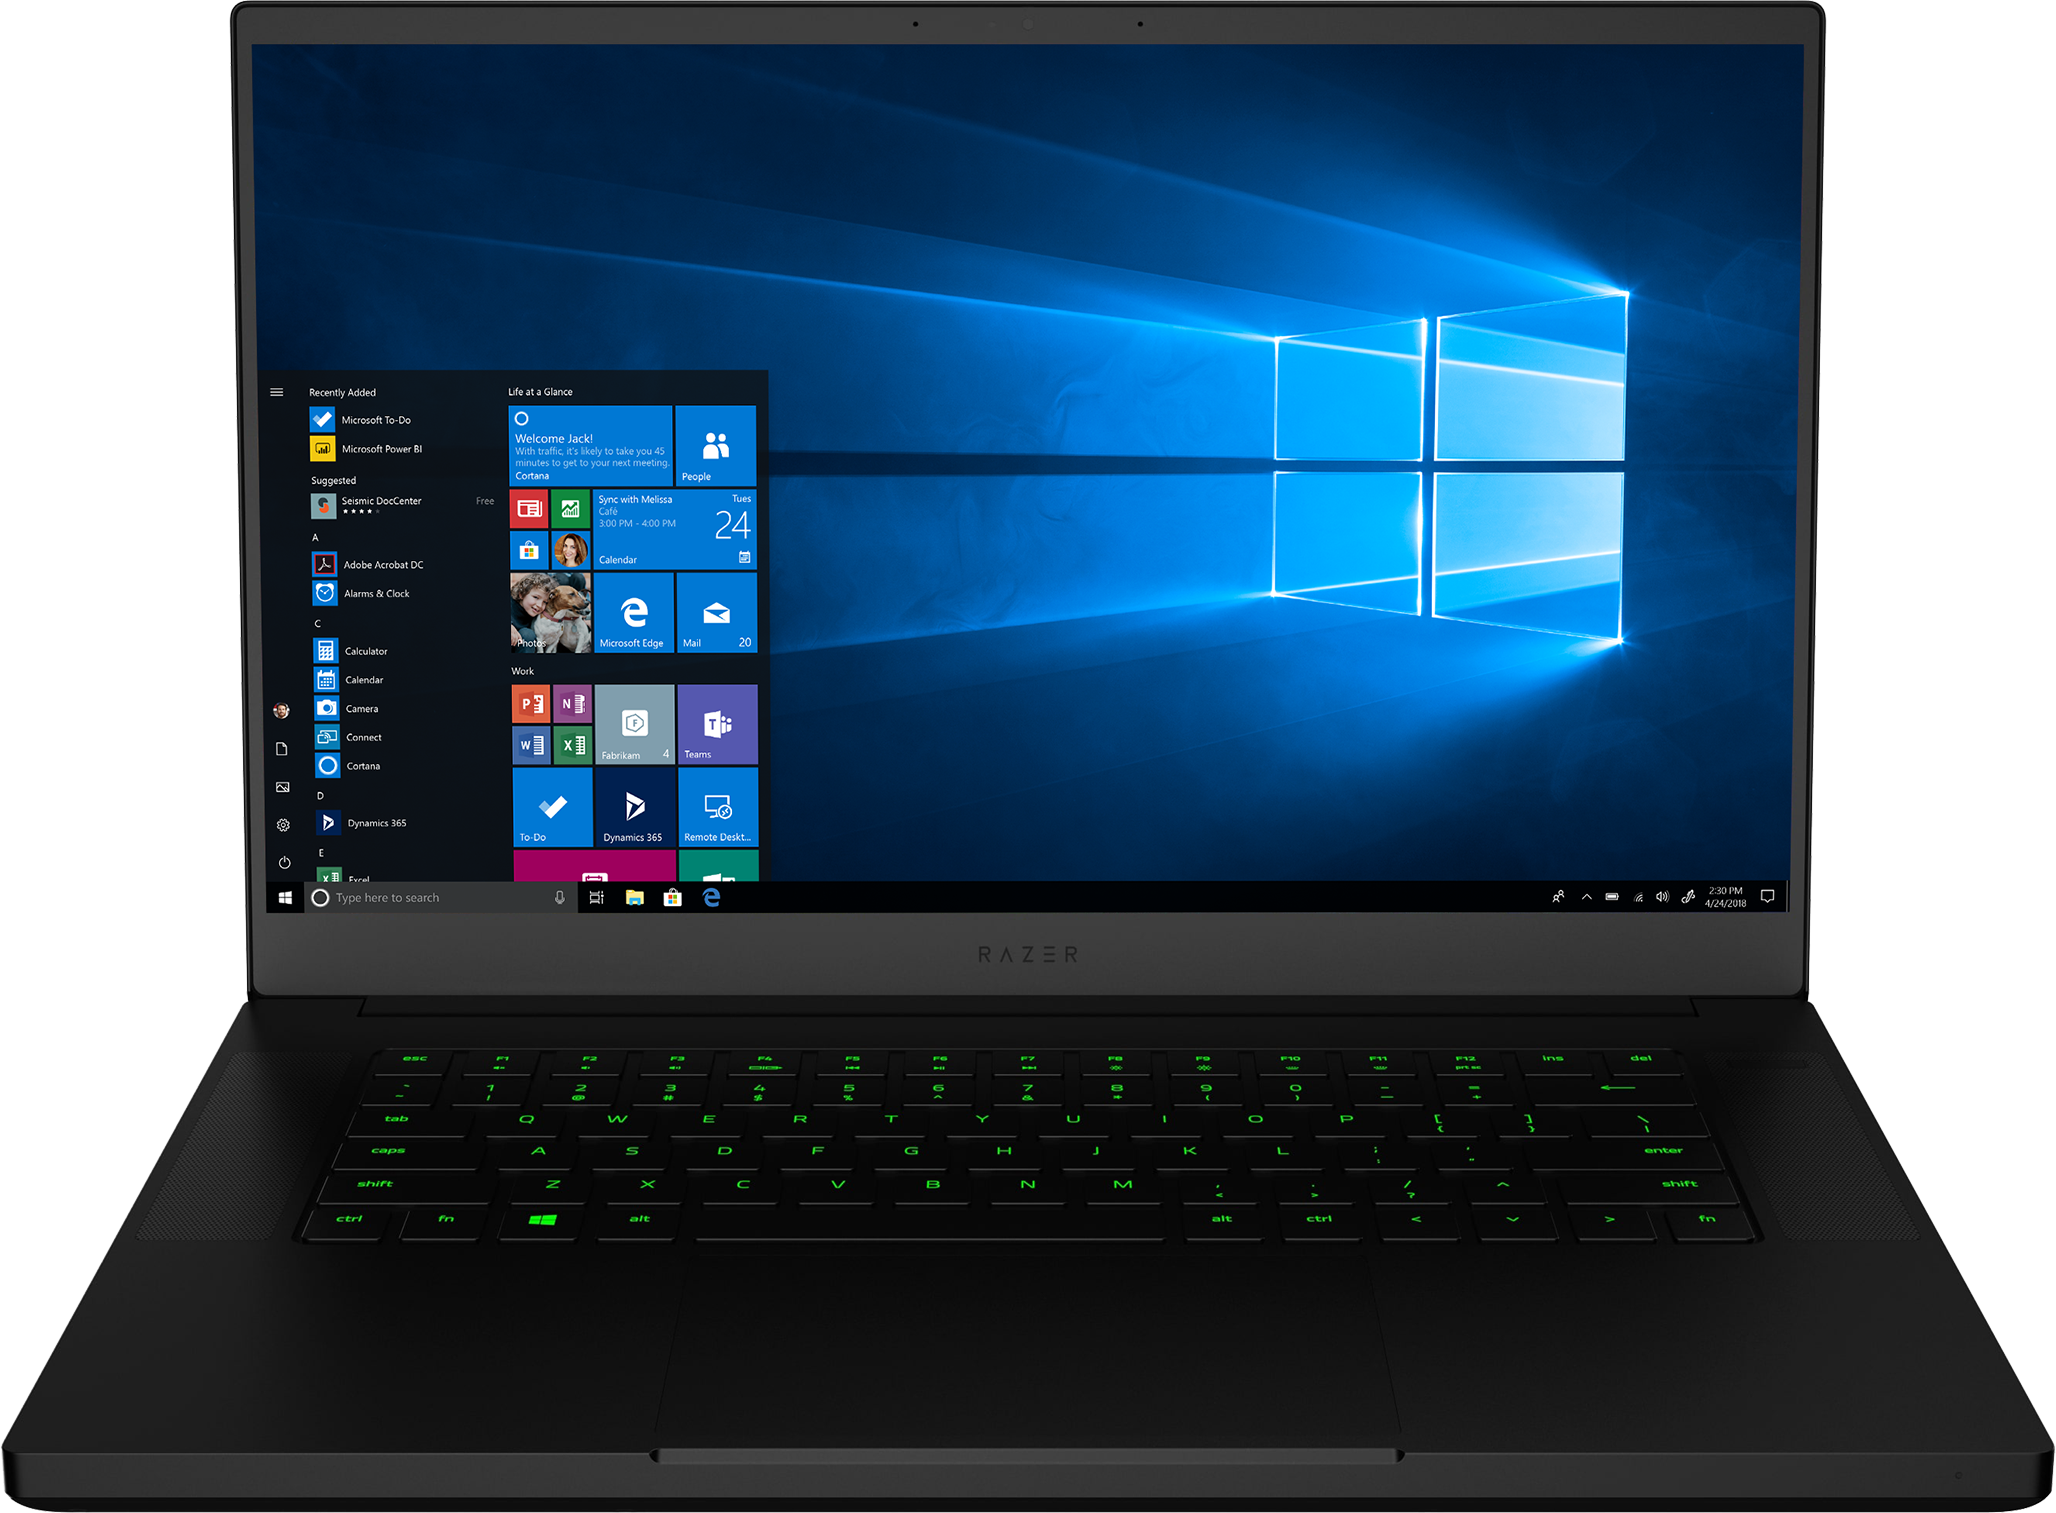 A front view of a Razer Blade 15 gaming laptop with Windows screen fill